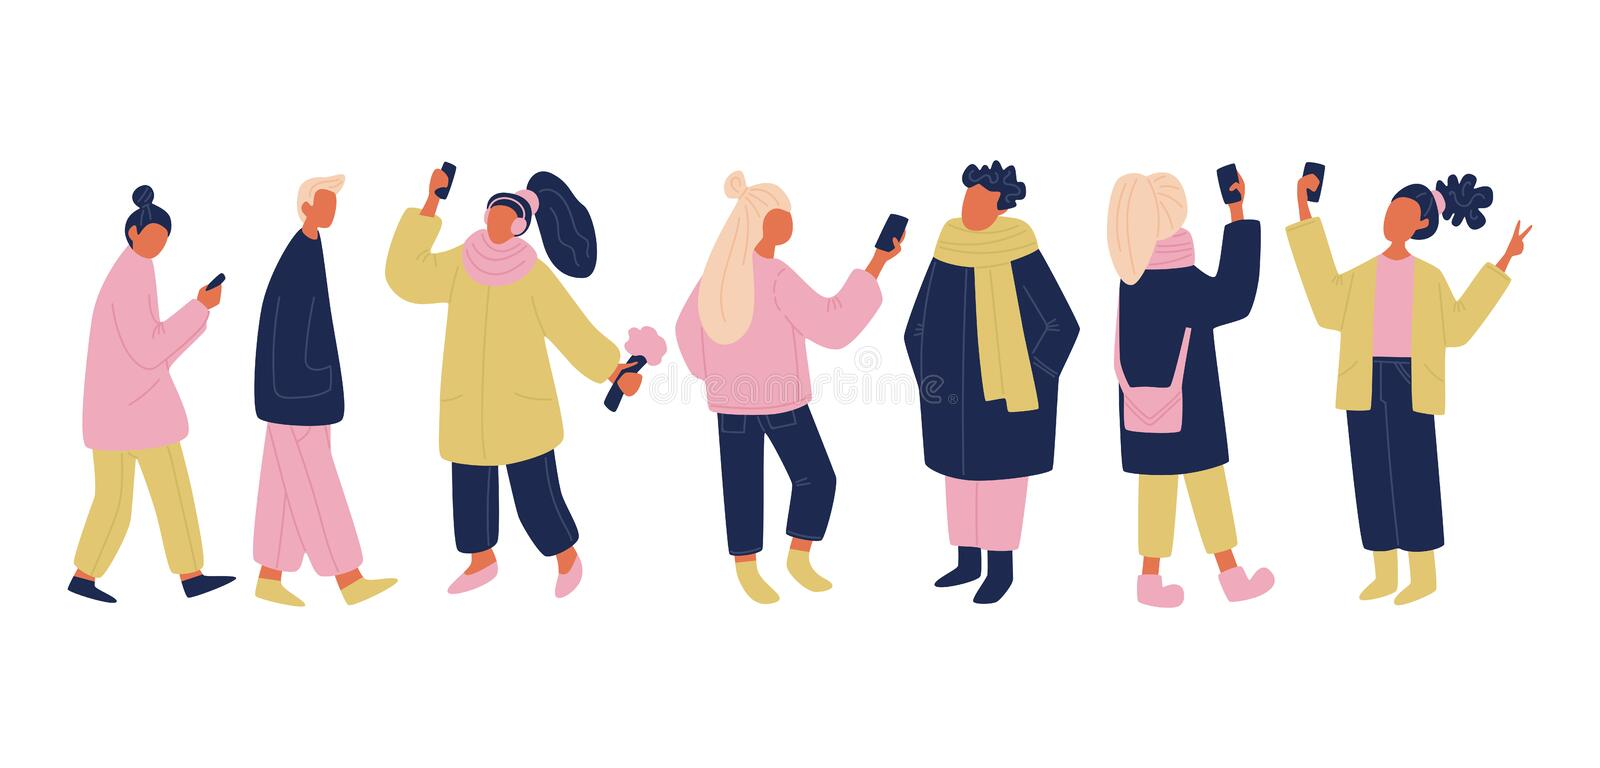 Vector communicating people set in pink, yellow and blue colors. isolated vector people with phones and gadgets taking selfies. stock illustration